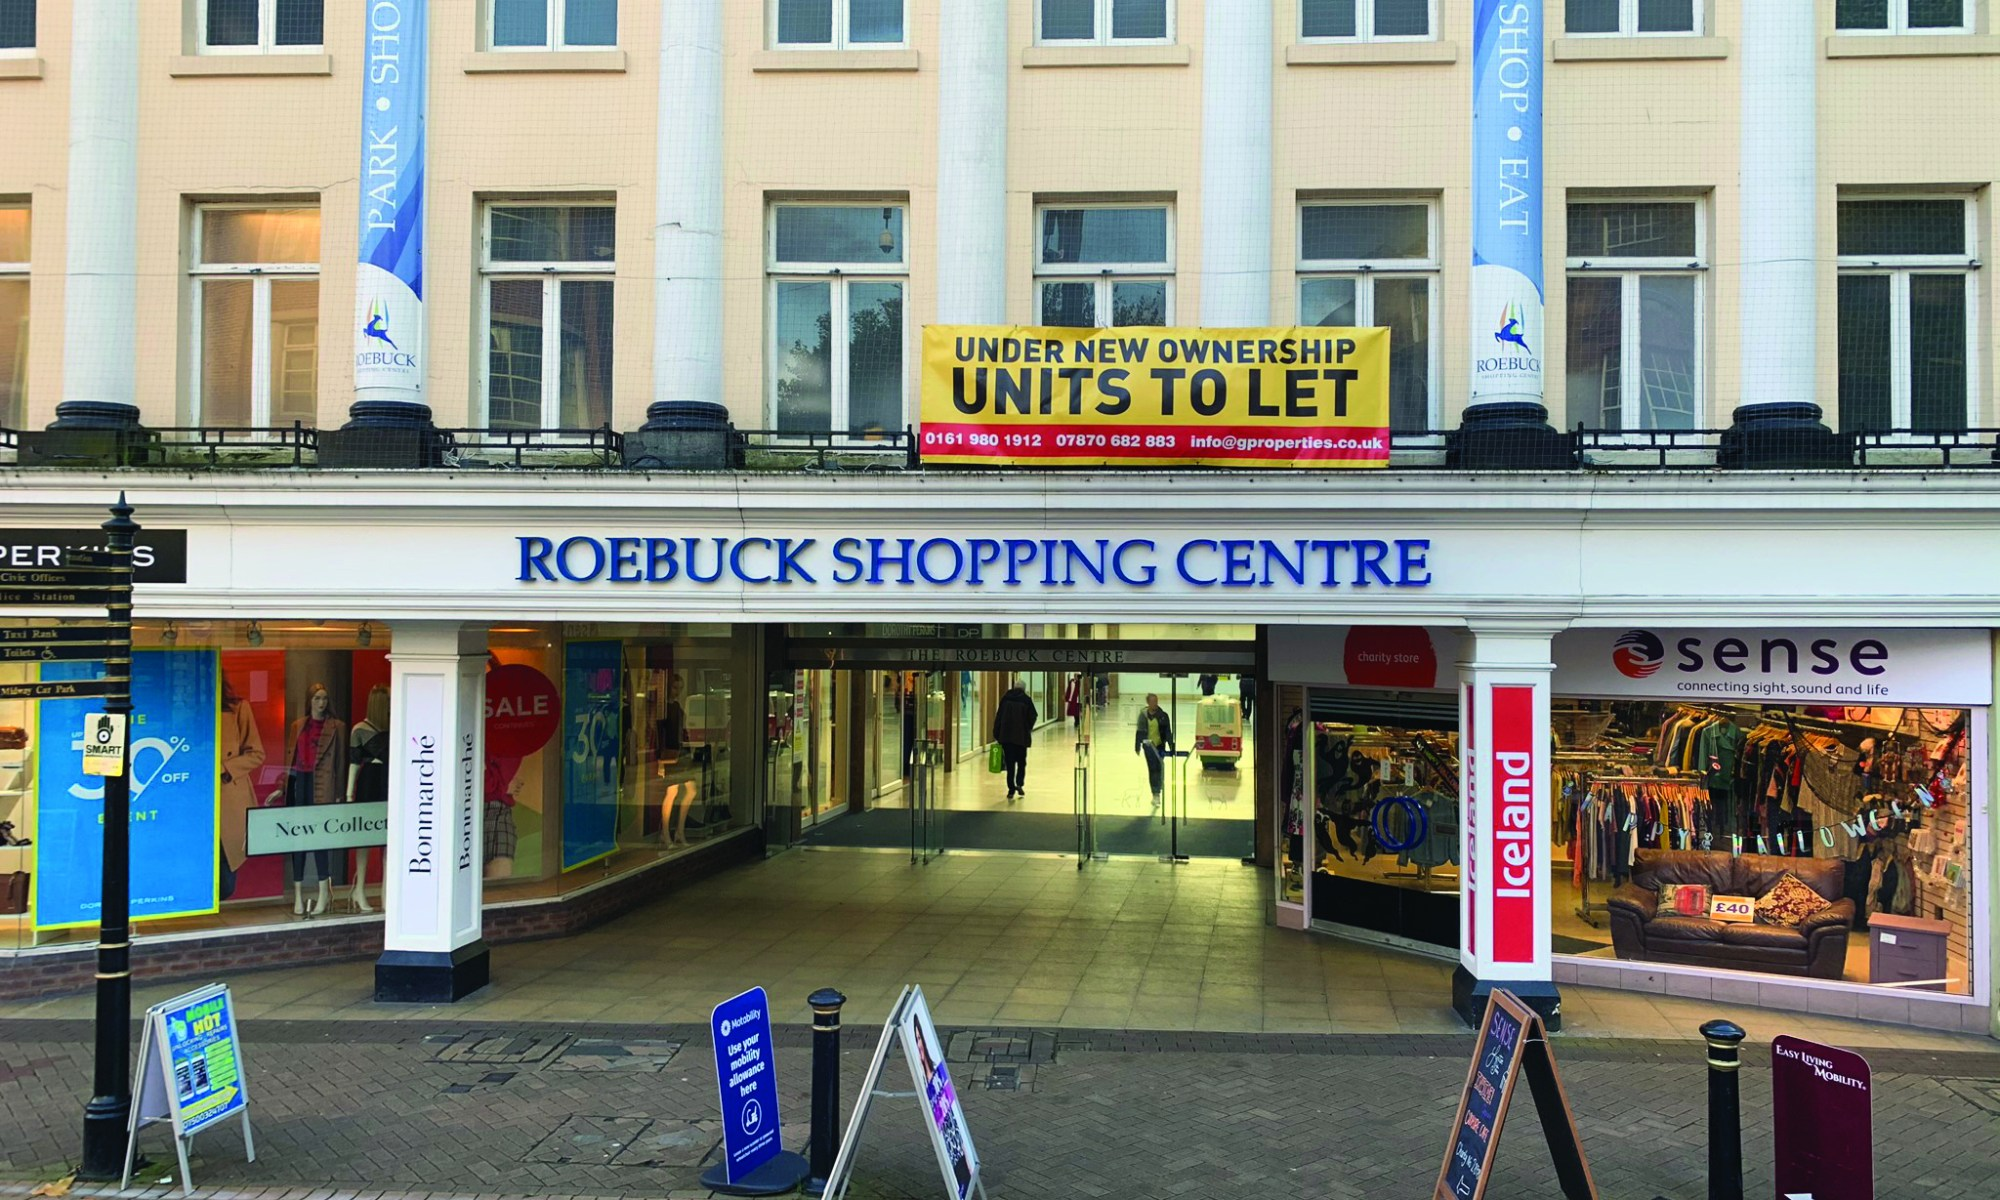 Roebuck Shopping Centre